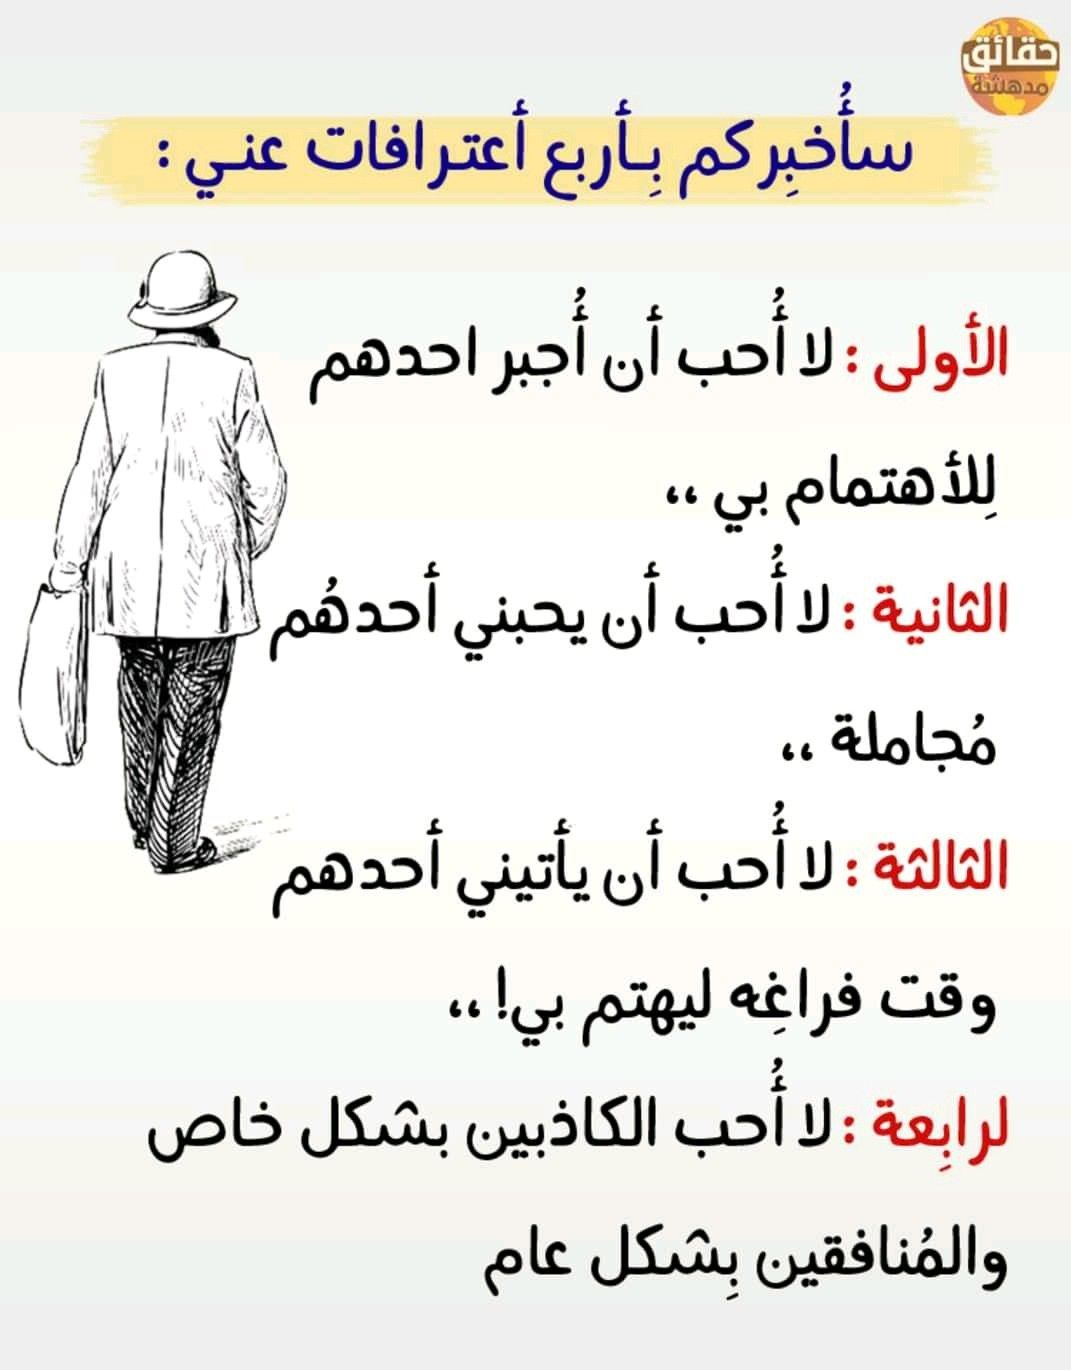 Pin By محمد أشرف On مختصر حياة Funny Arabic Quotes Arabic Quotes Quotes